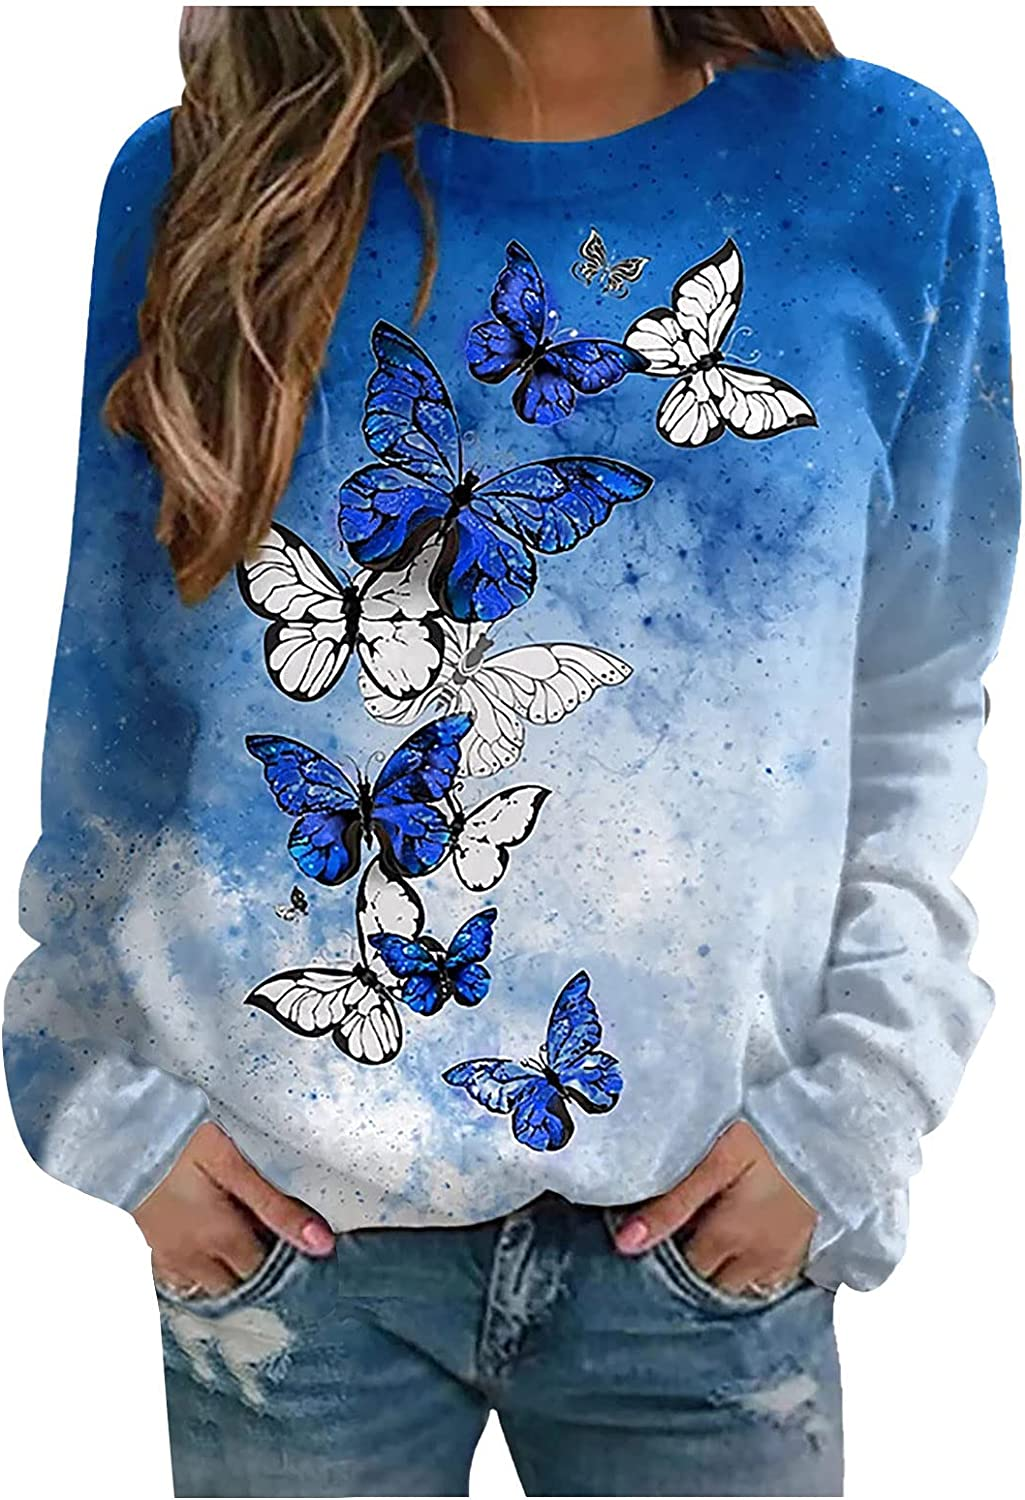 Blouses for Women Fashion 2021,Comfy O-Neck Butterfly Printed Pullover Tops Loose Long Sleeve Ladies Sexy Breathable T-Shirts